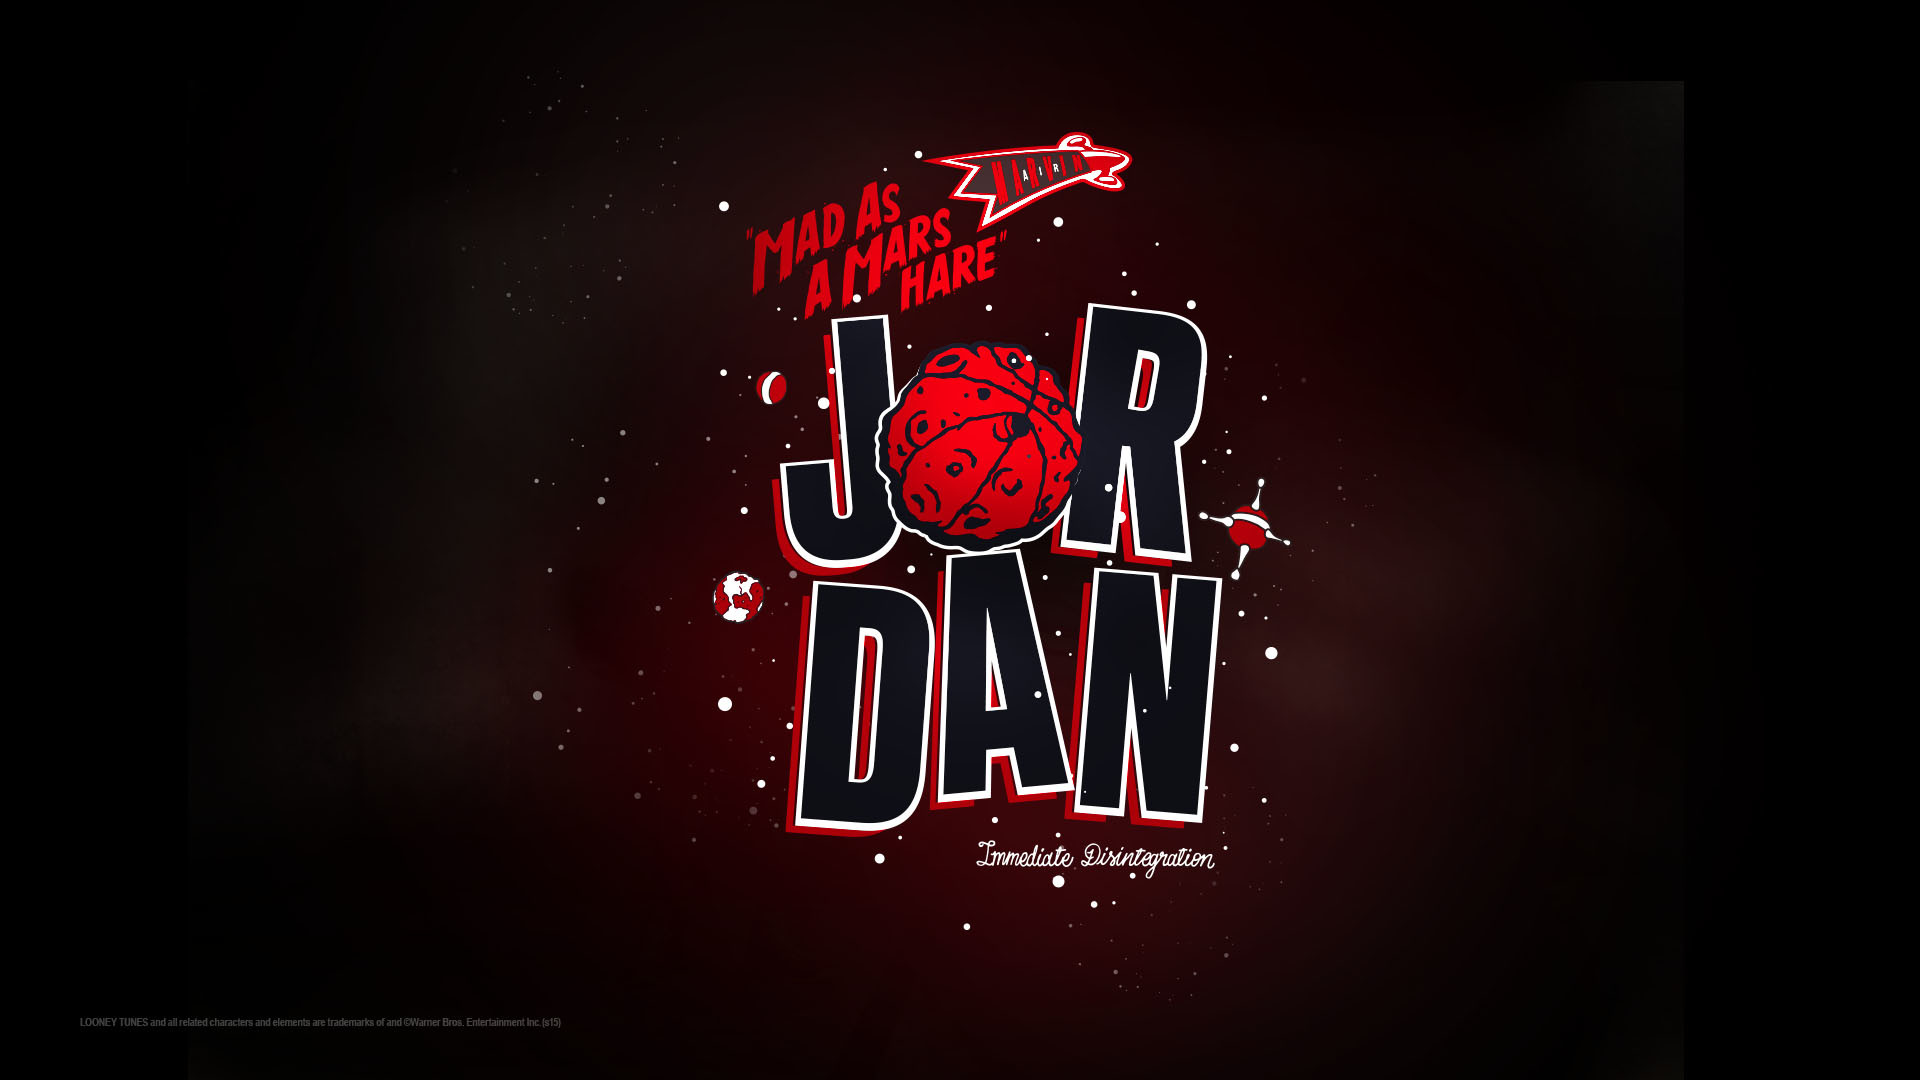 Nike Nba Marvel Wallpaper: Nike Wallpaper Basketball (59+ Images